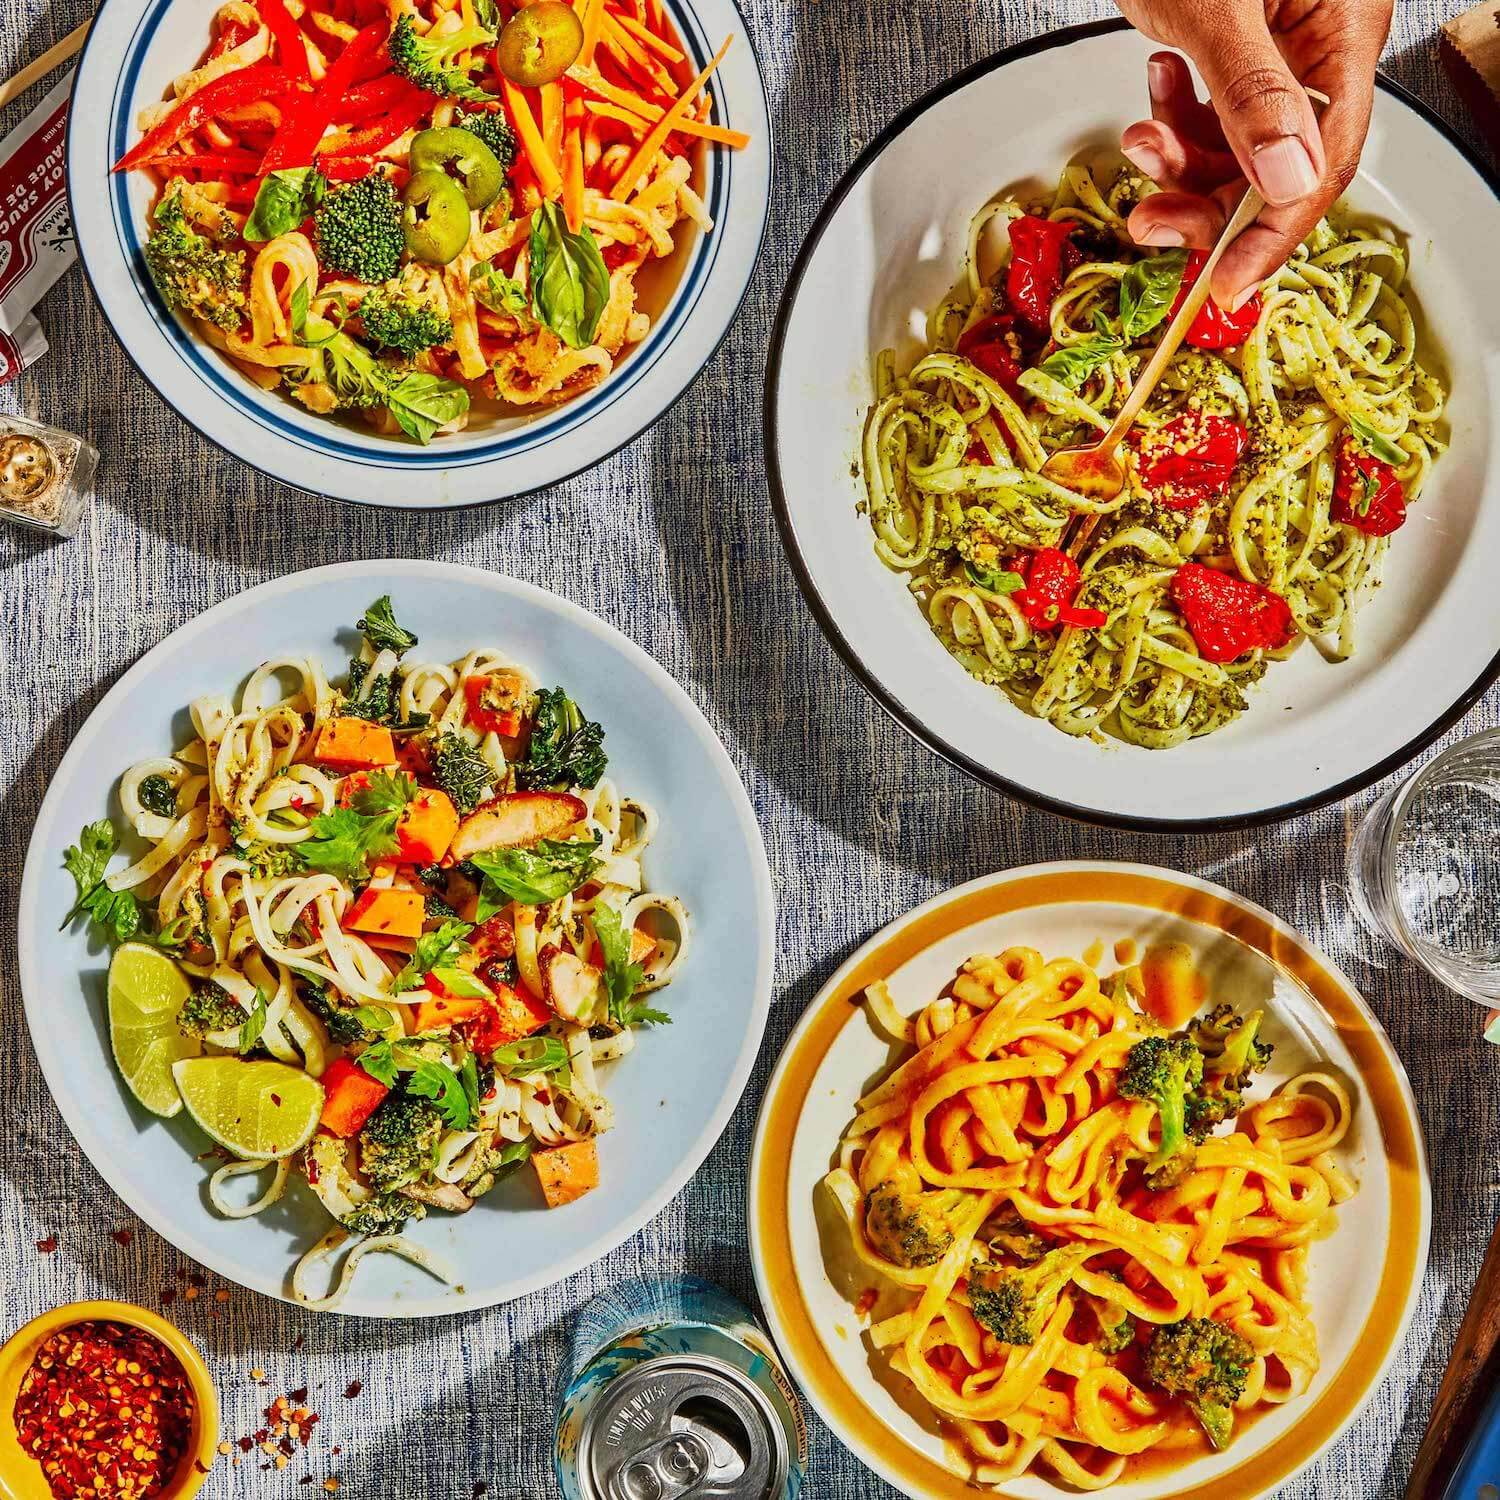 A table-setting of 4 different noodle dishes with someone twisting one of the noodles onto a fork.